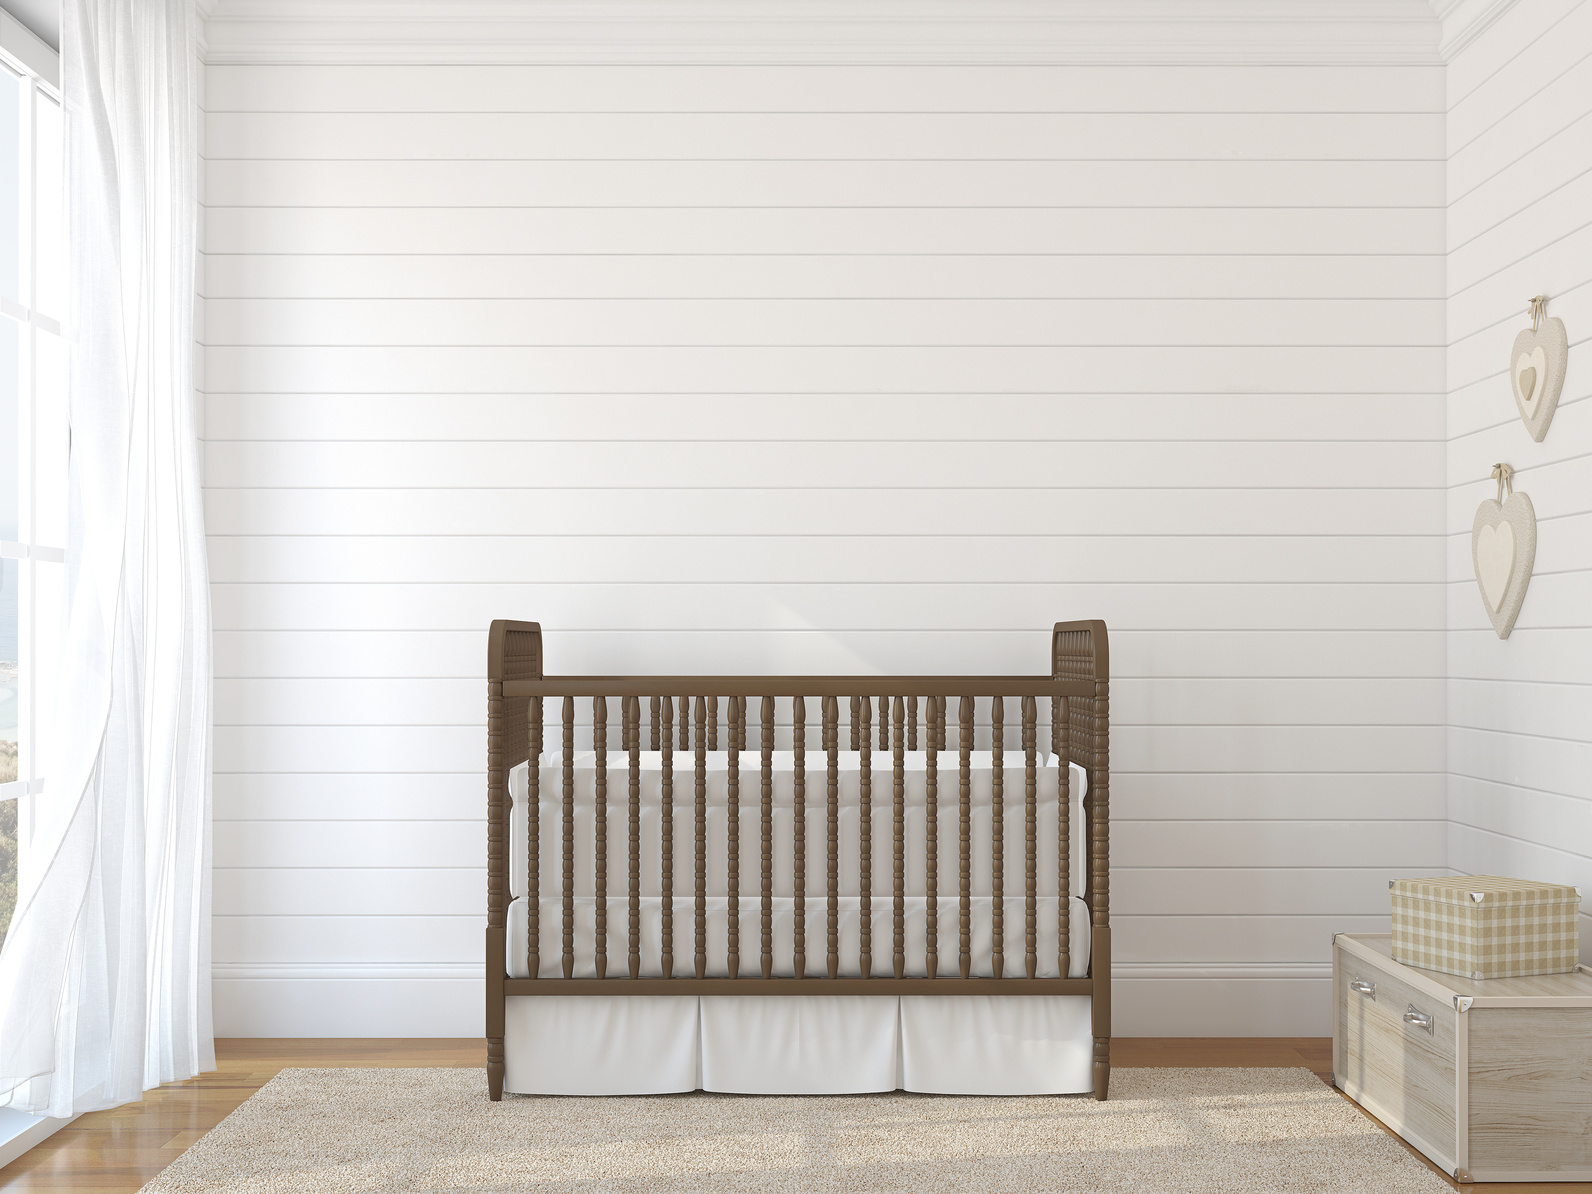 How to Set Up a Perfect Nursery for Sleeping